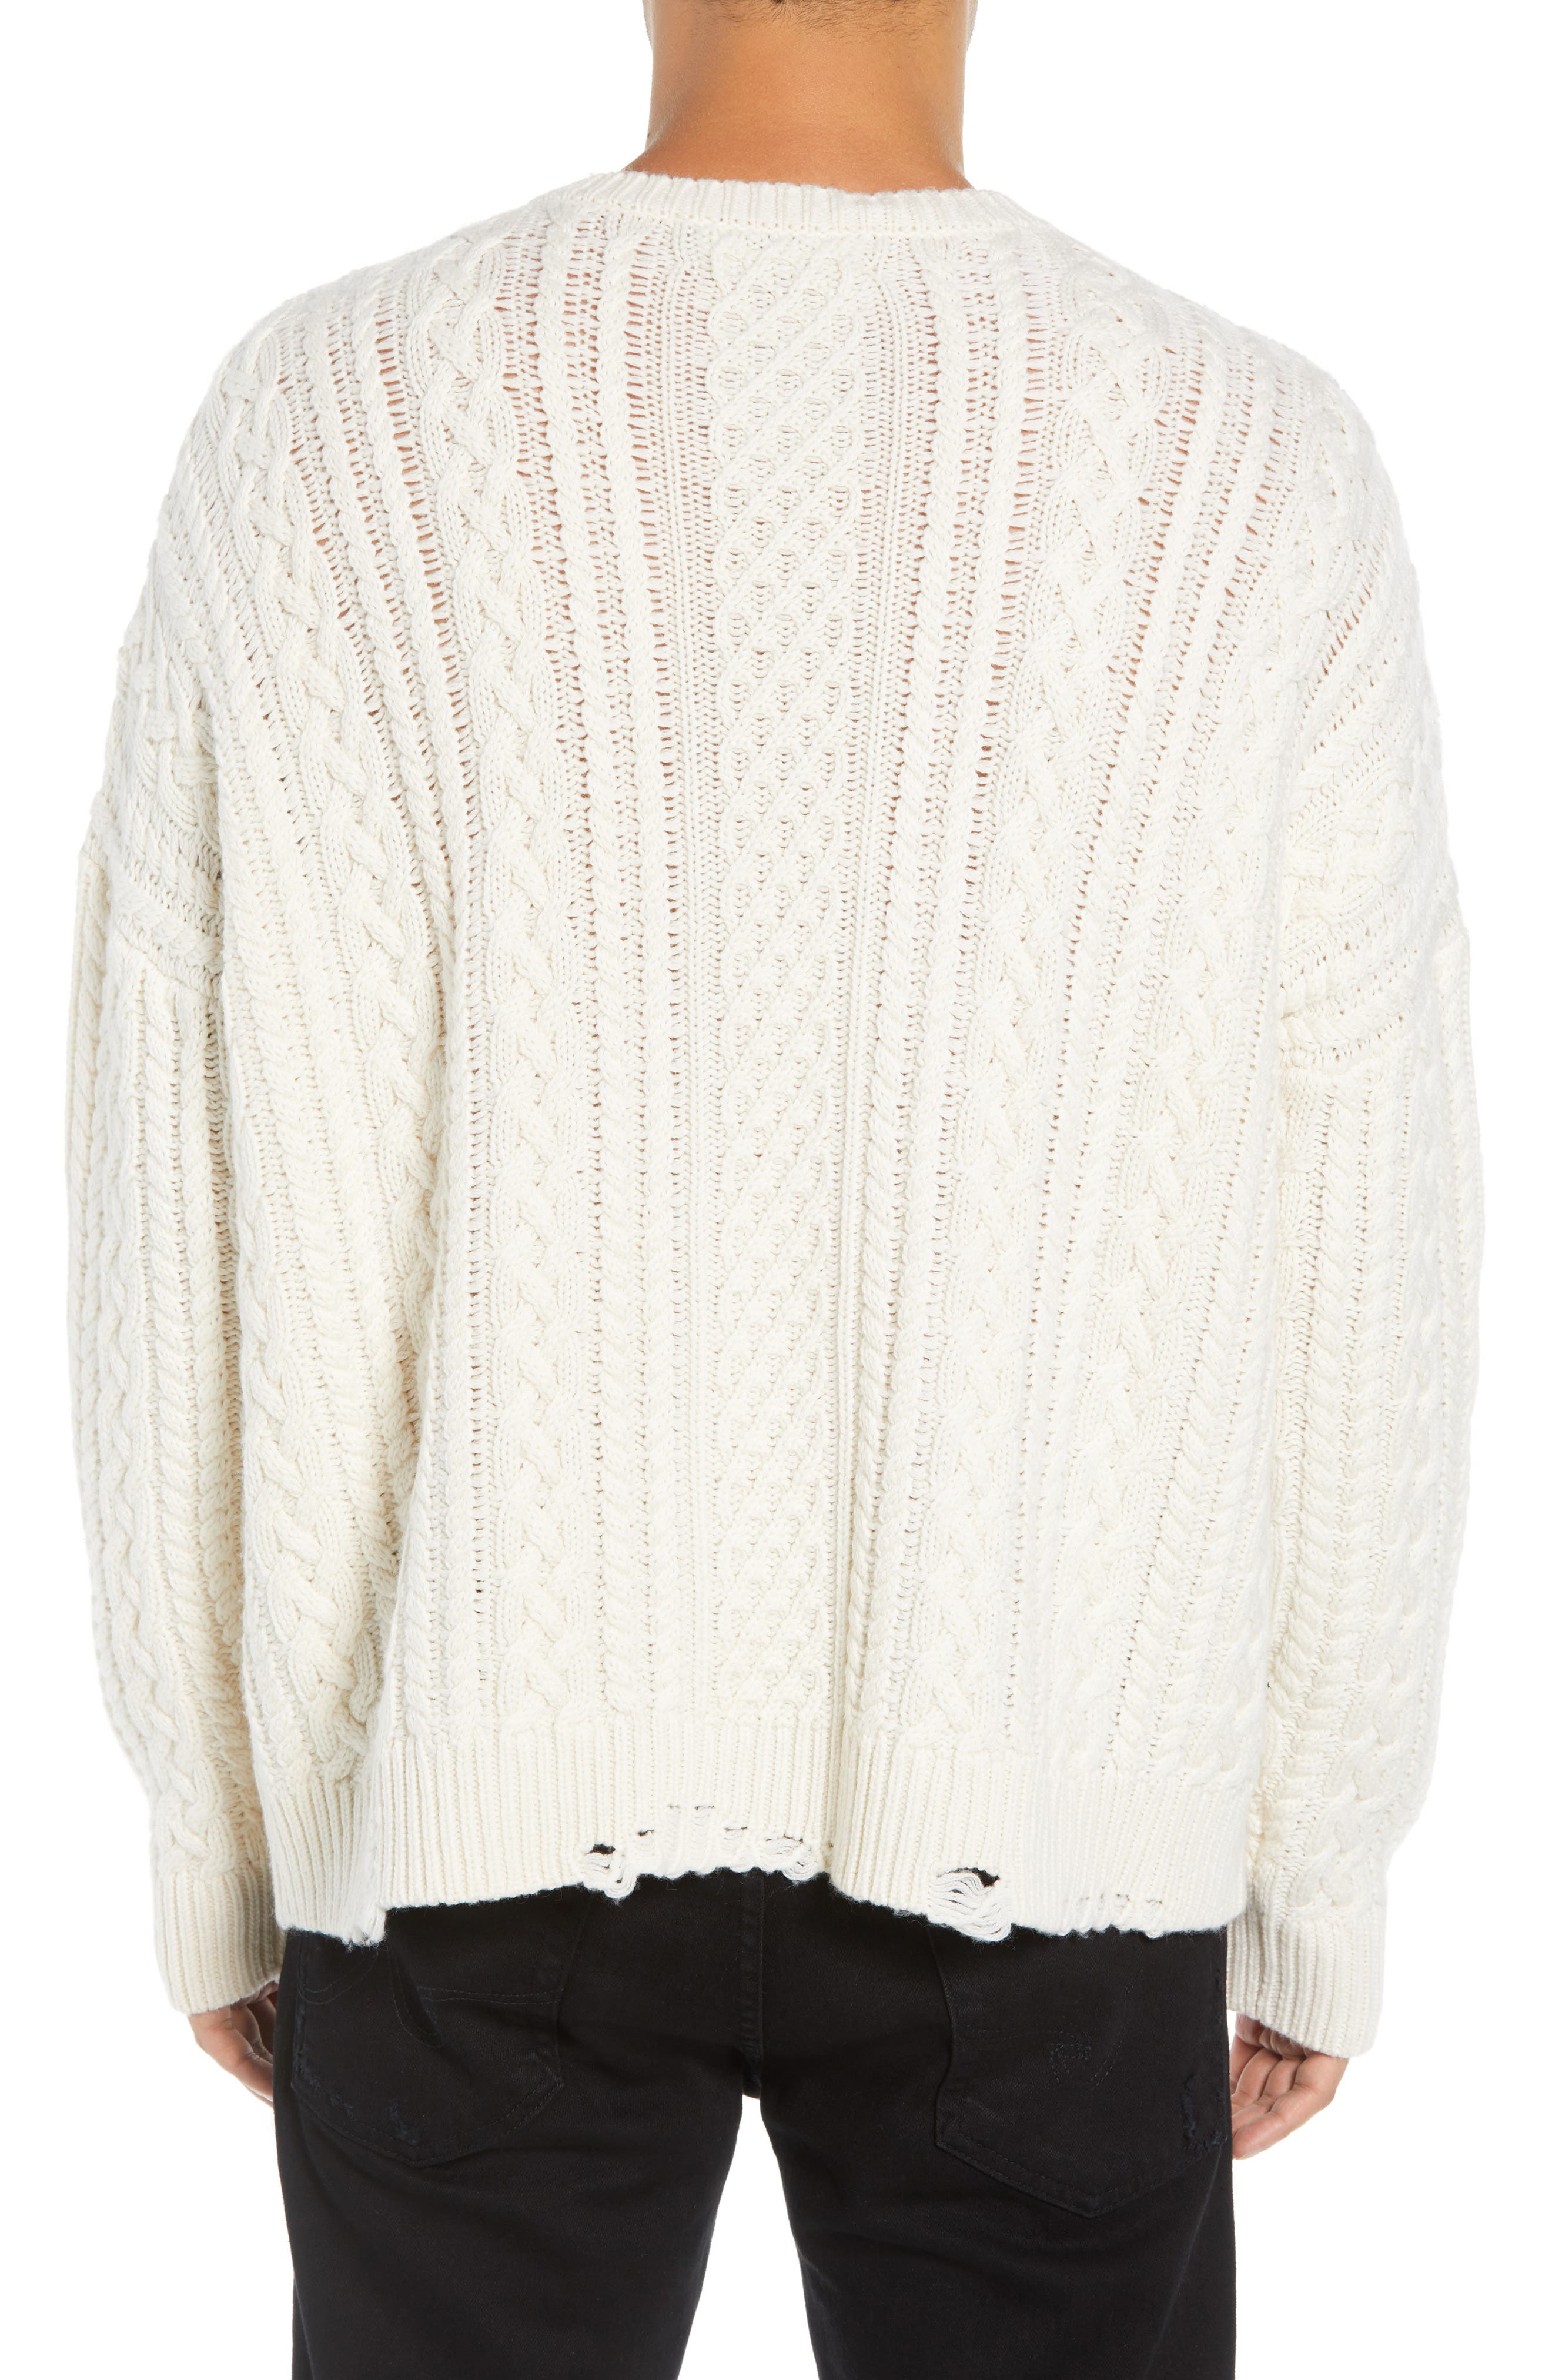 Oversize Distressed Wool Blend Sweater,                             Alternate thumbnail 2, color,                             BEIGE/ WHITE